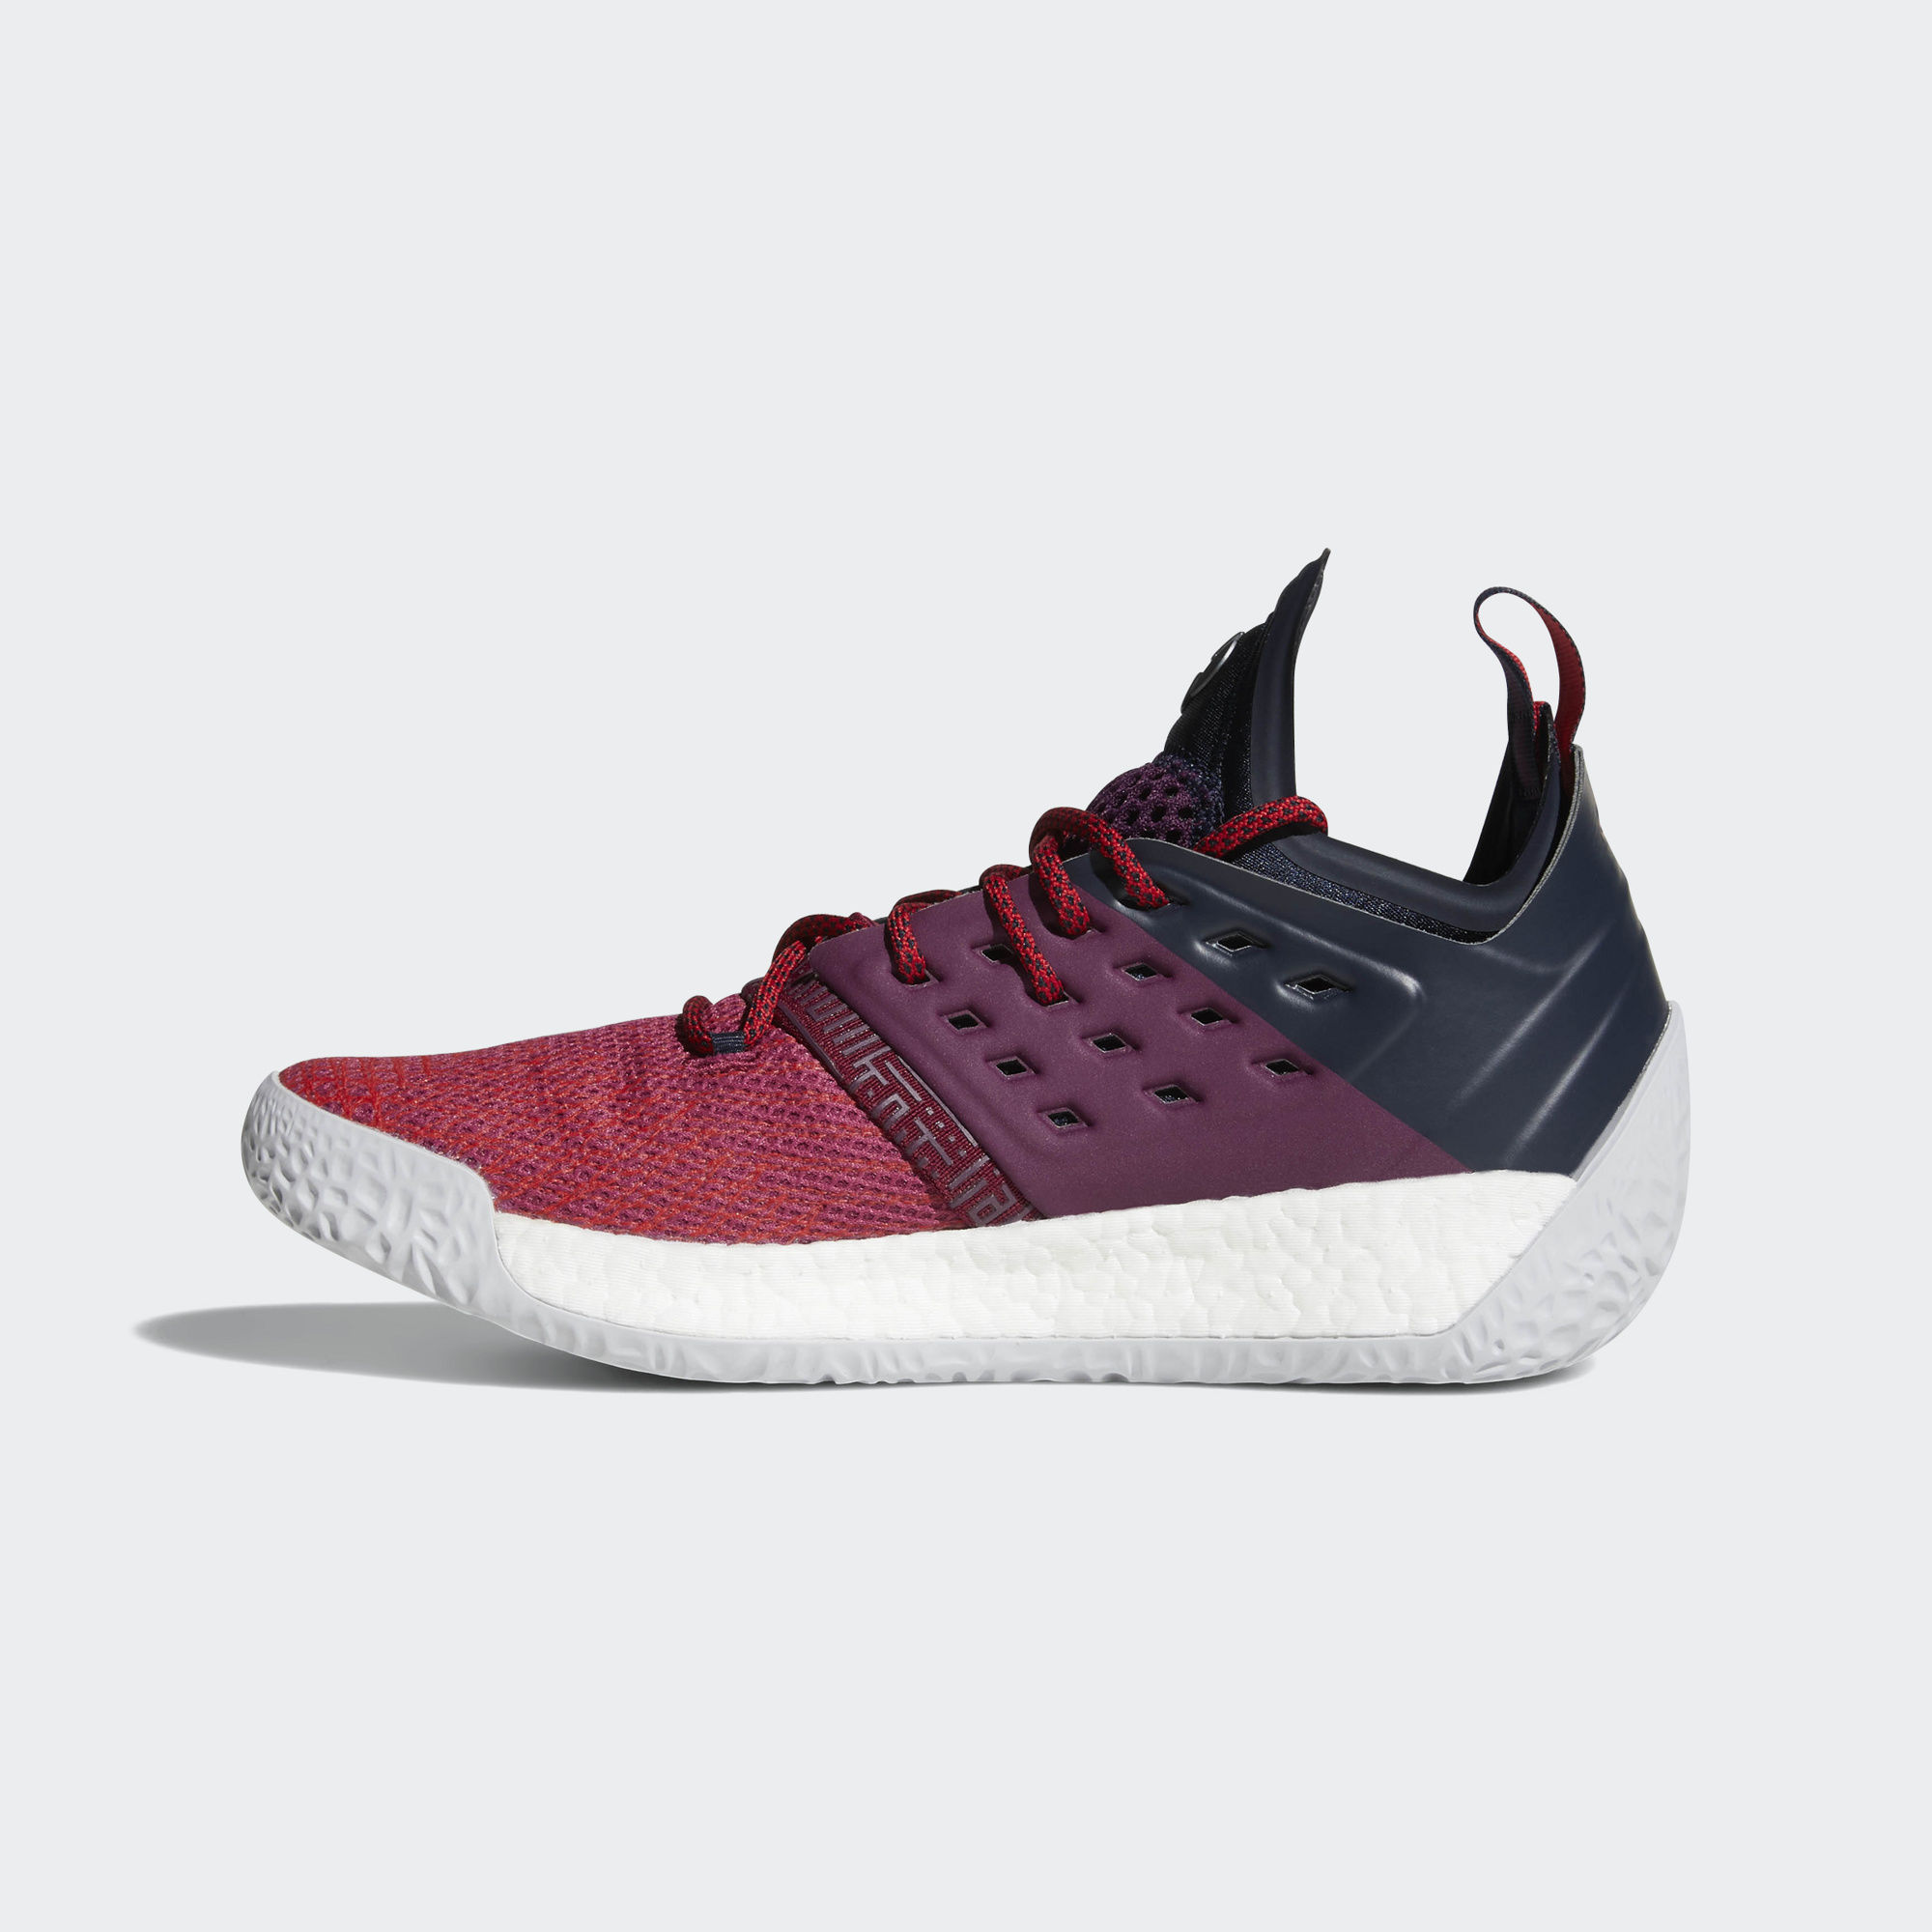 908e88aa5cf0 ... netherlands adidas releases james hardens second signature shoe harden  vol. 2 masses ab5c8 3499a